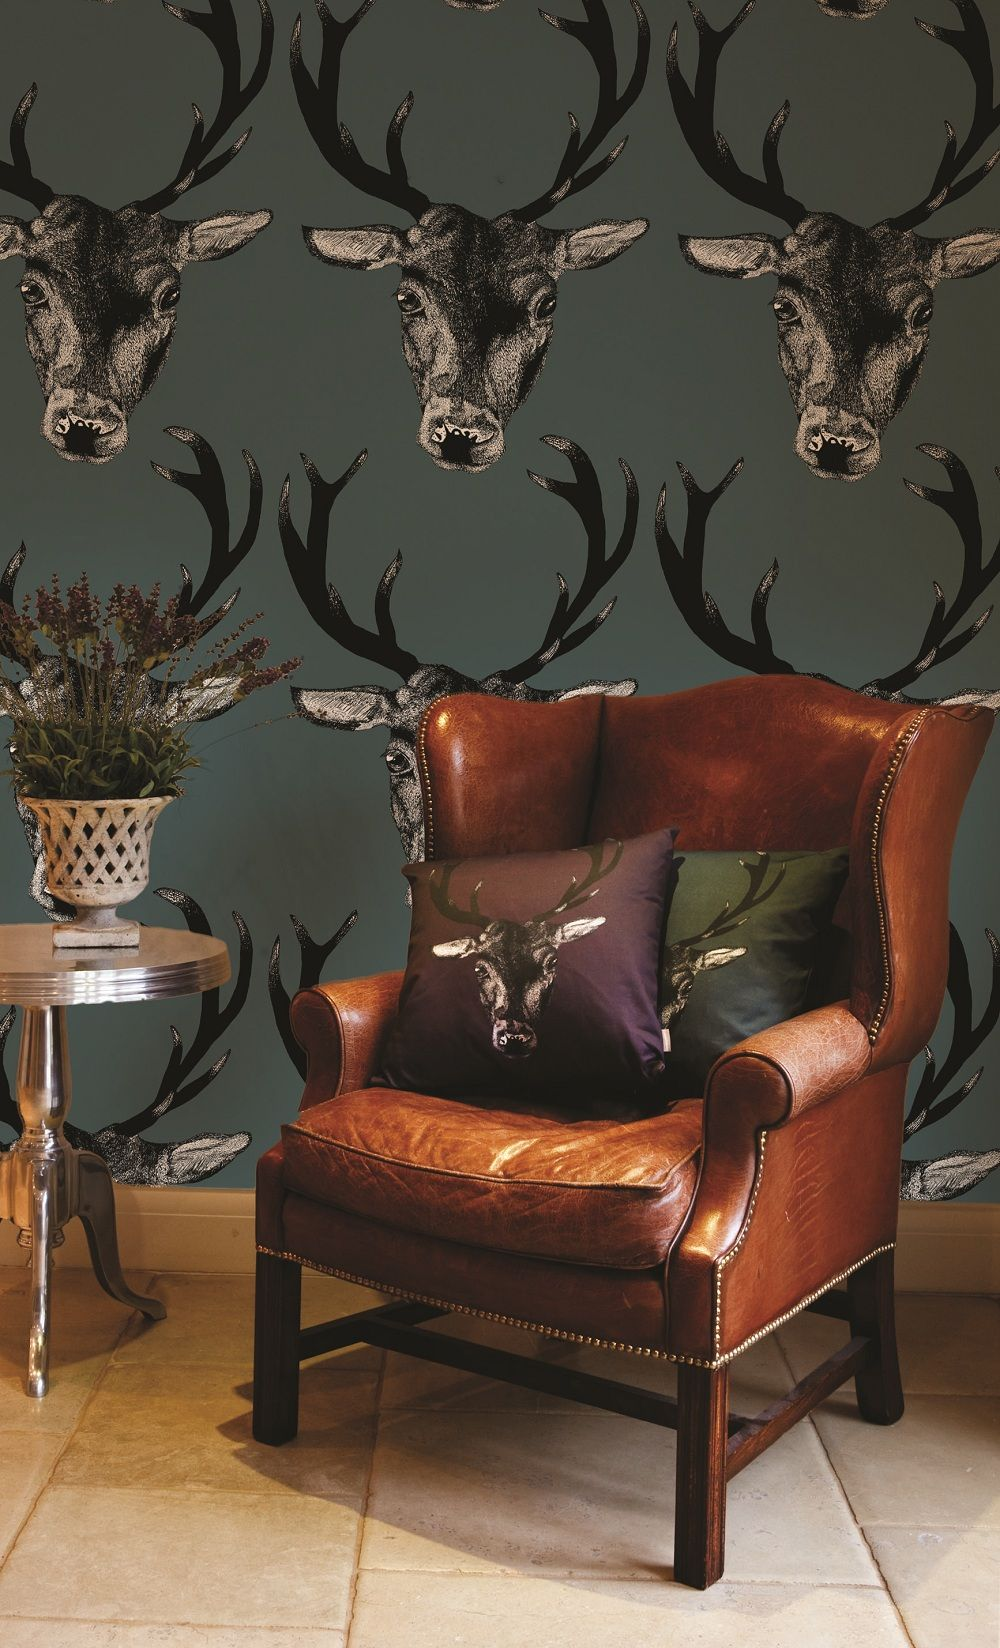 Stag Head Wallpaper by Lisa Bliss Lifestyle from Graduate